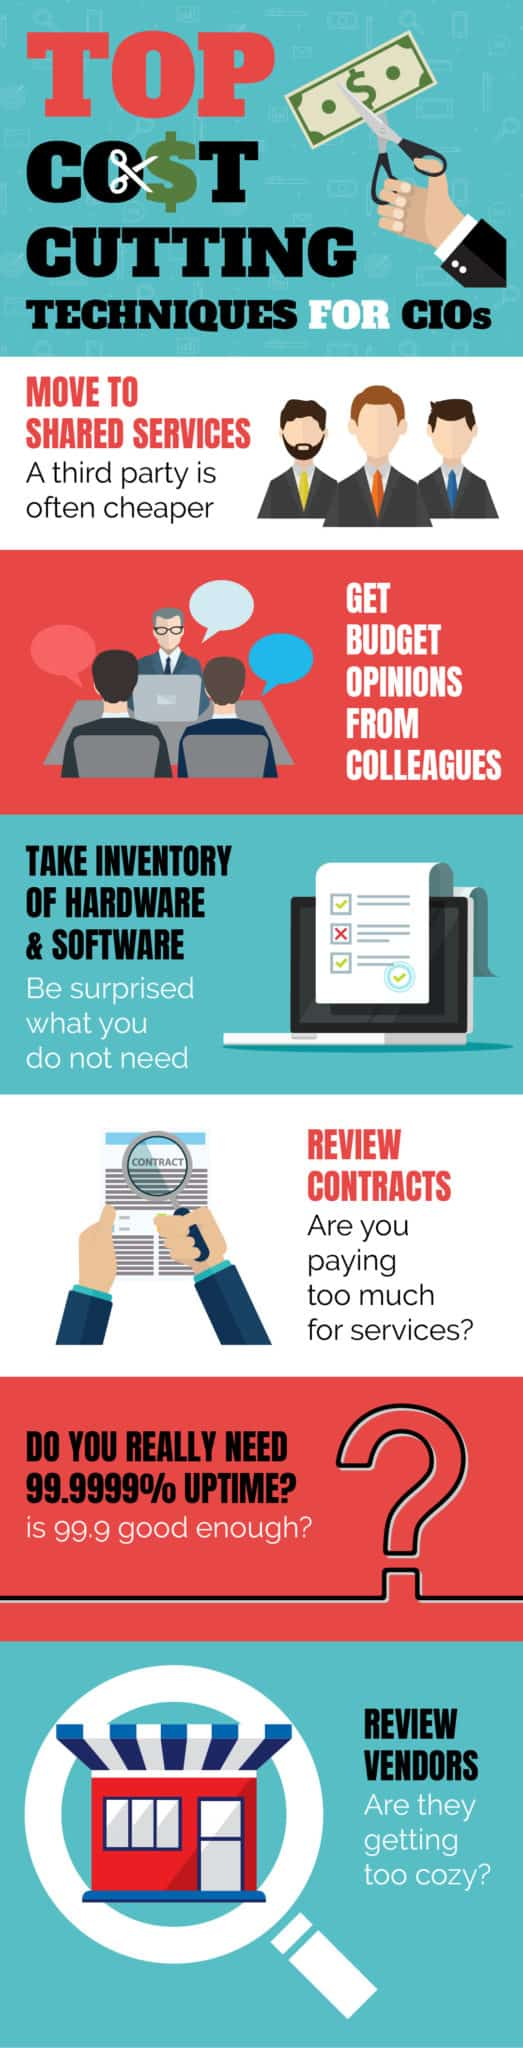 Infographic - More Cost Cutting Techniques for CIOs